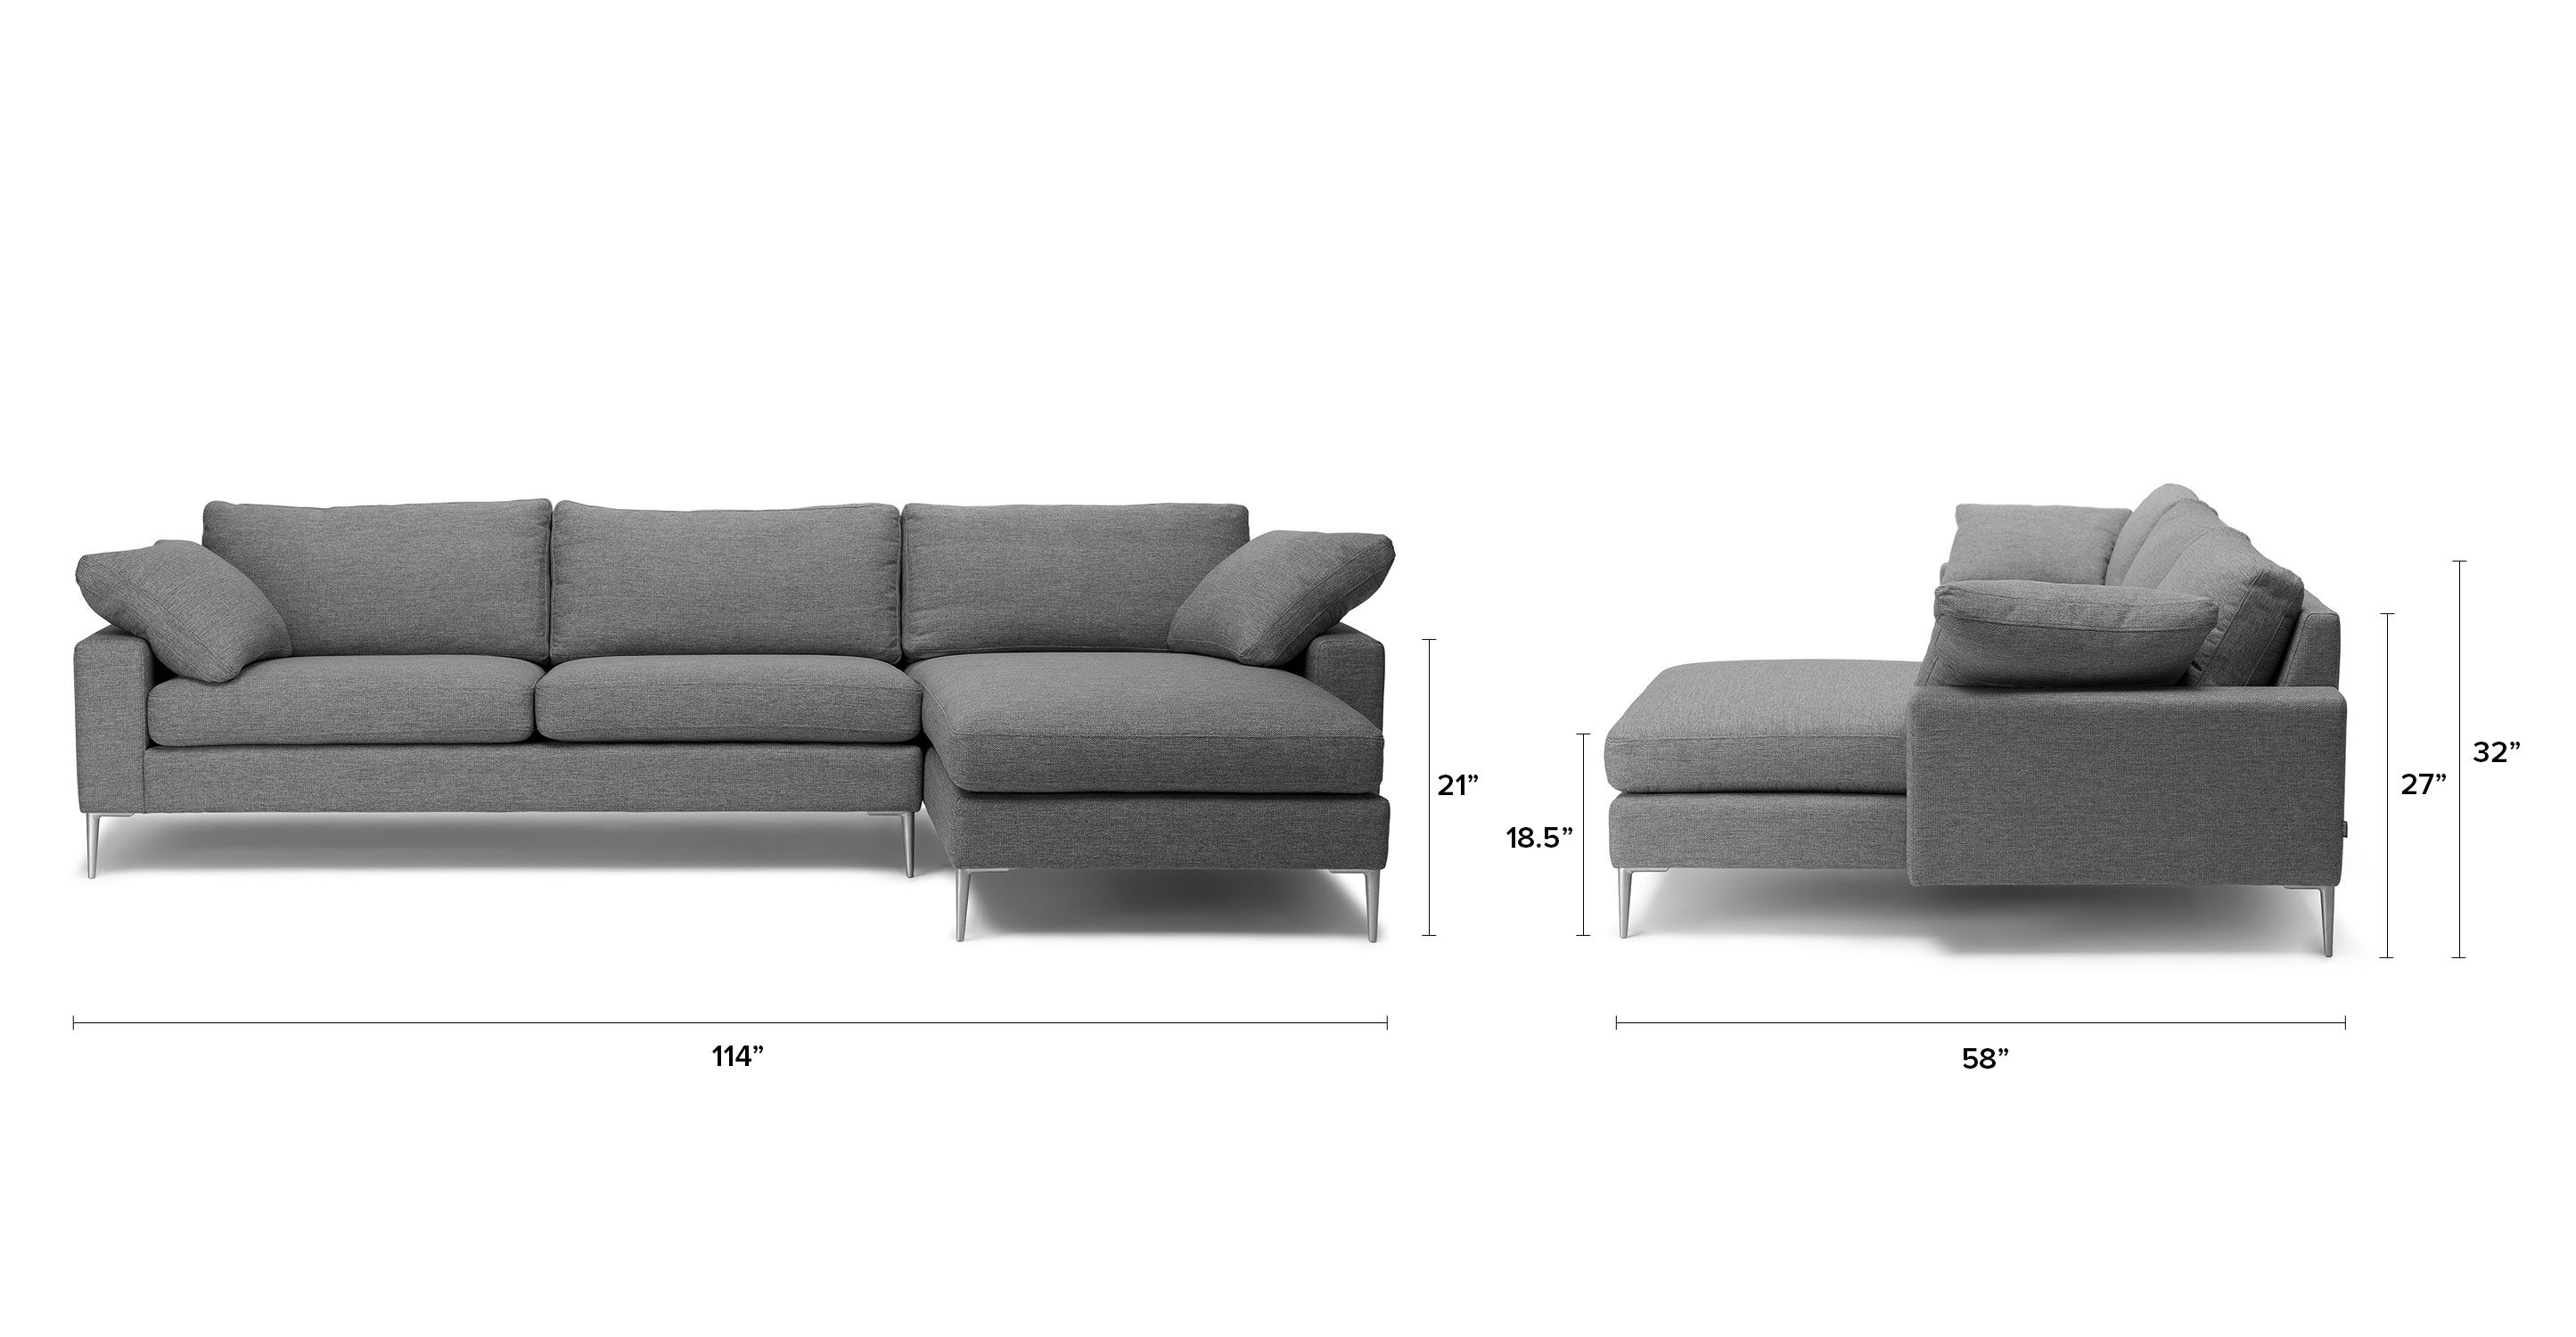 KENLEY Sectional Sofa Right